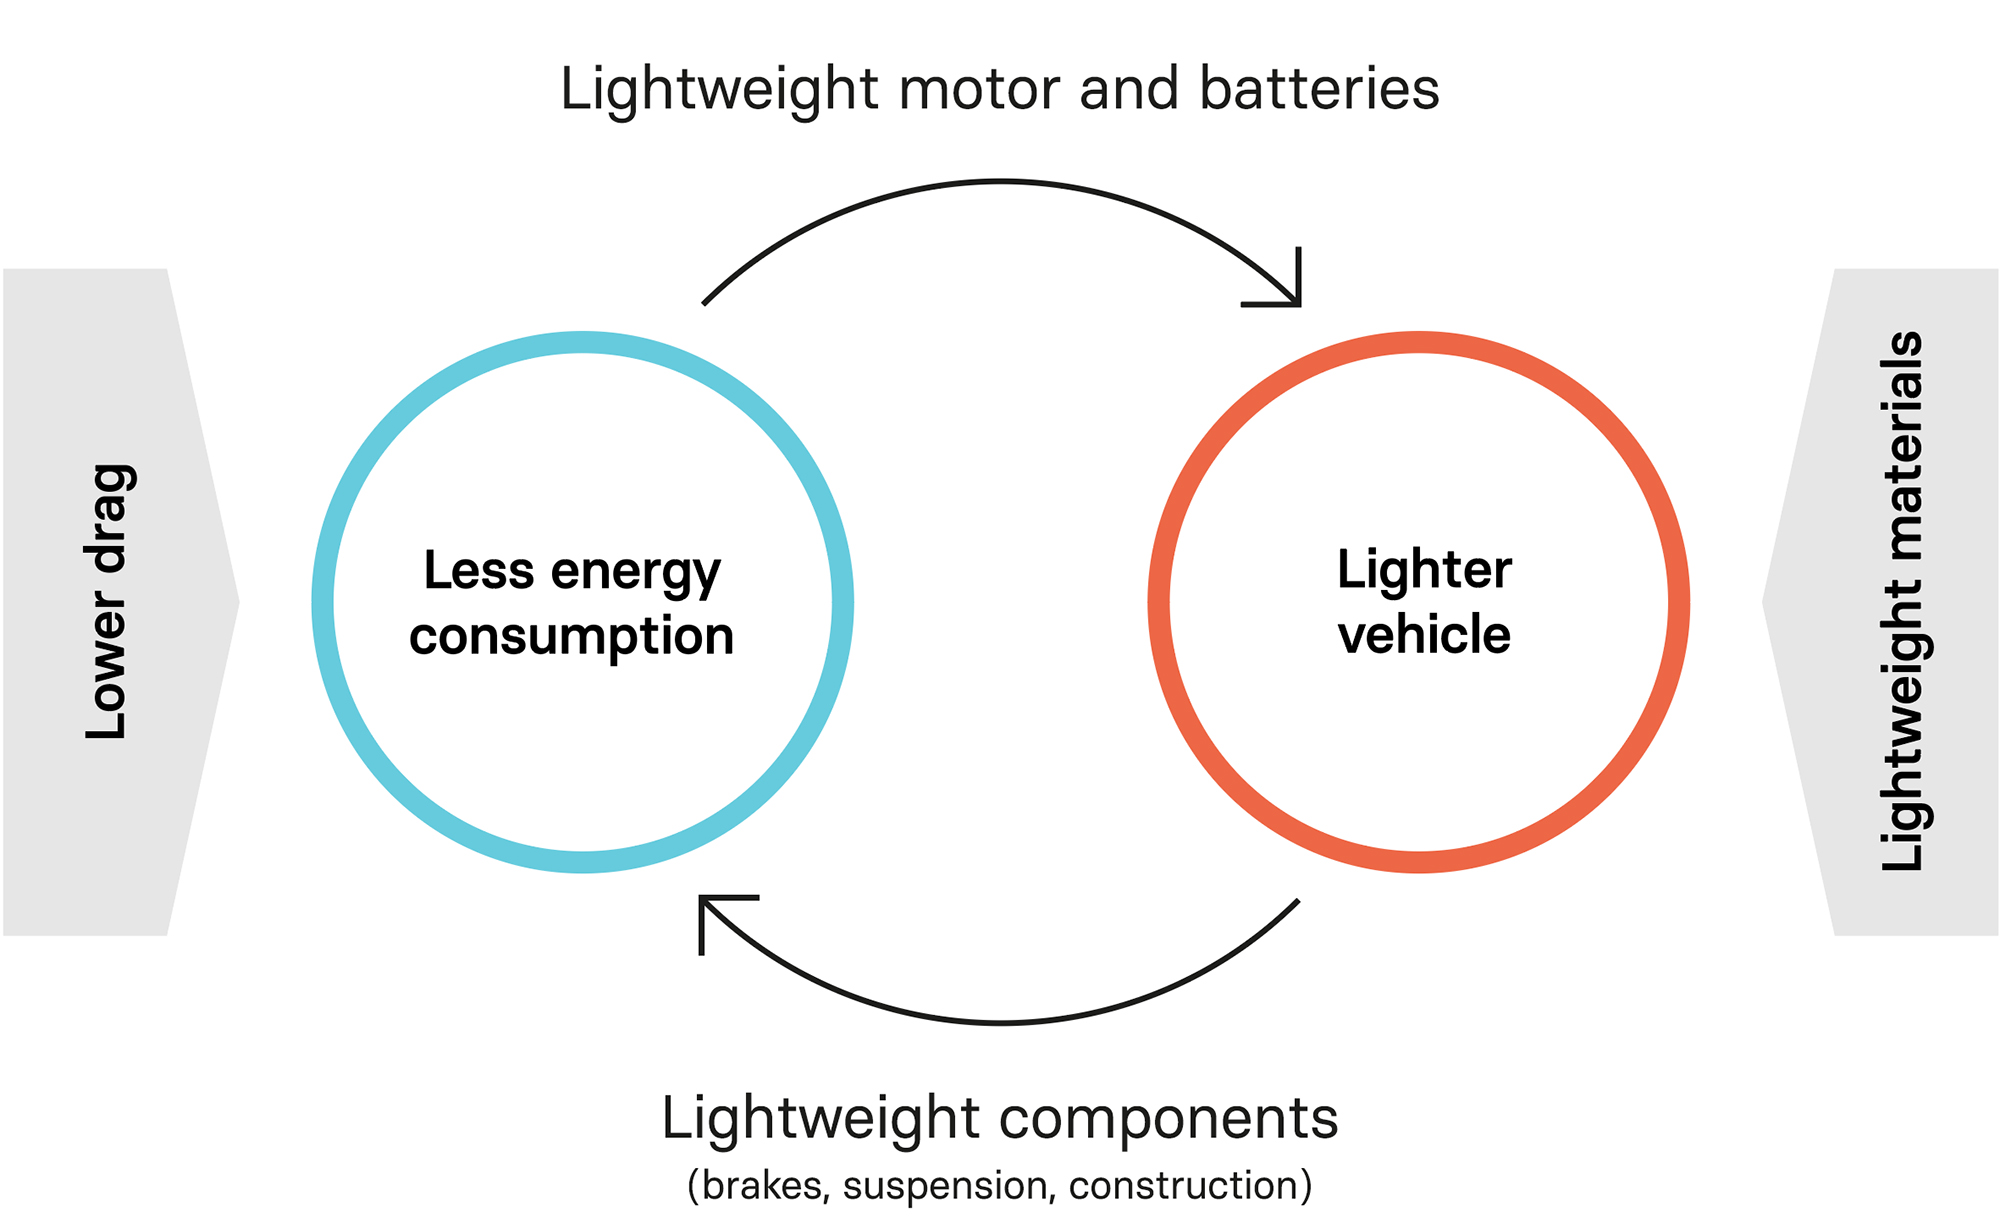 Importance of lightweight materials in electric vehicles